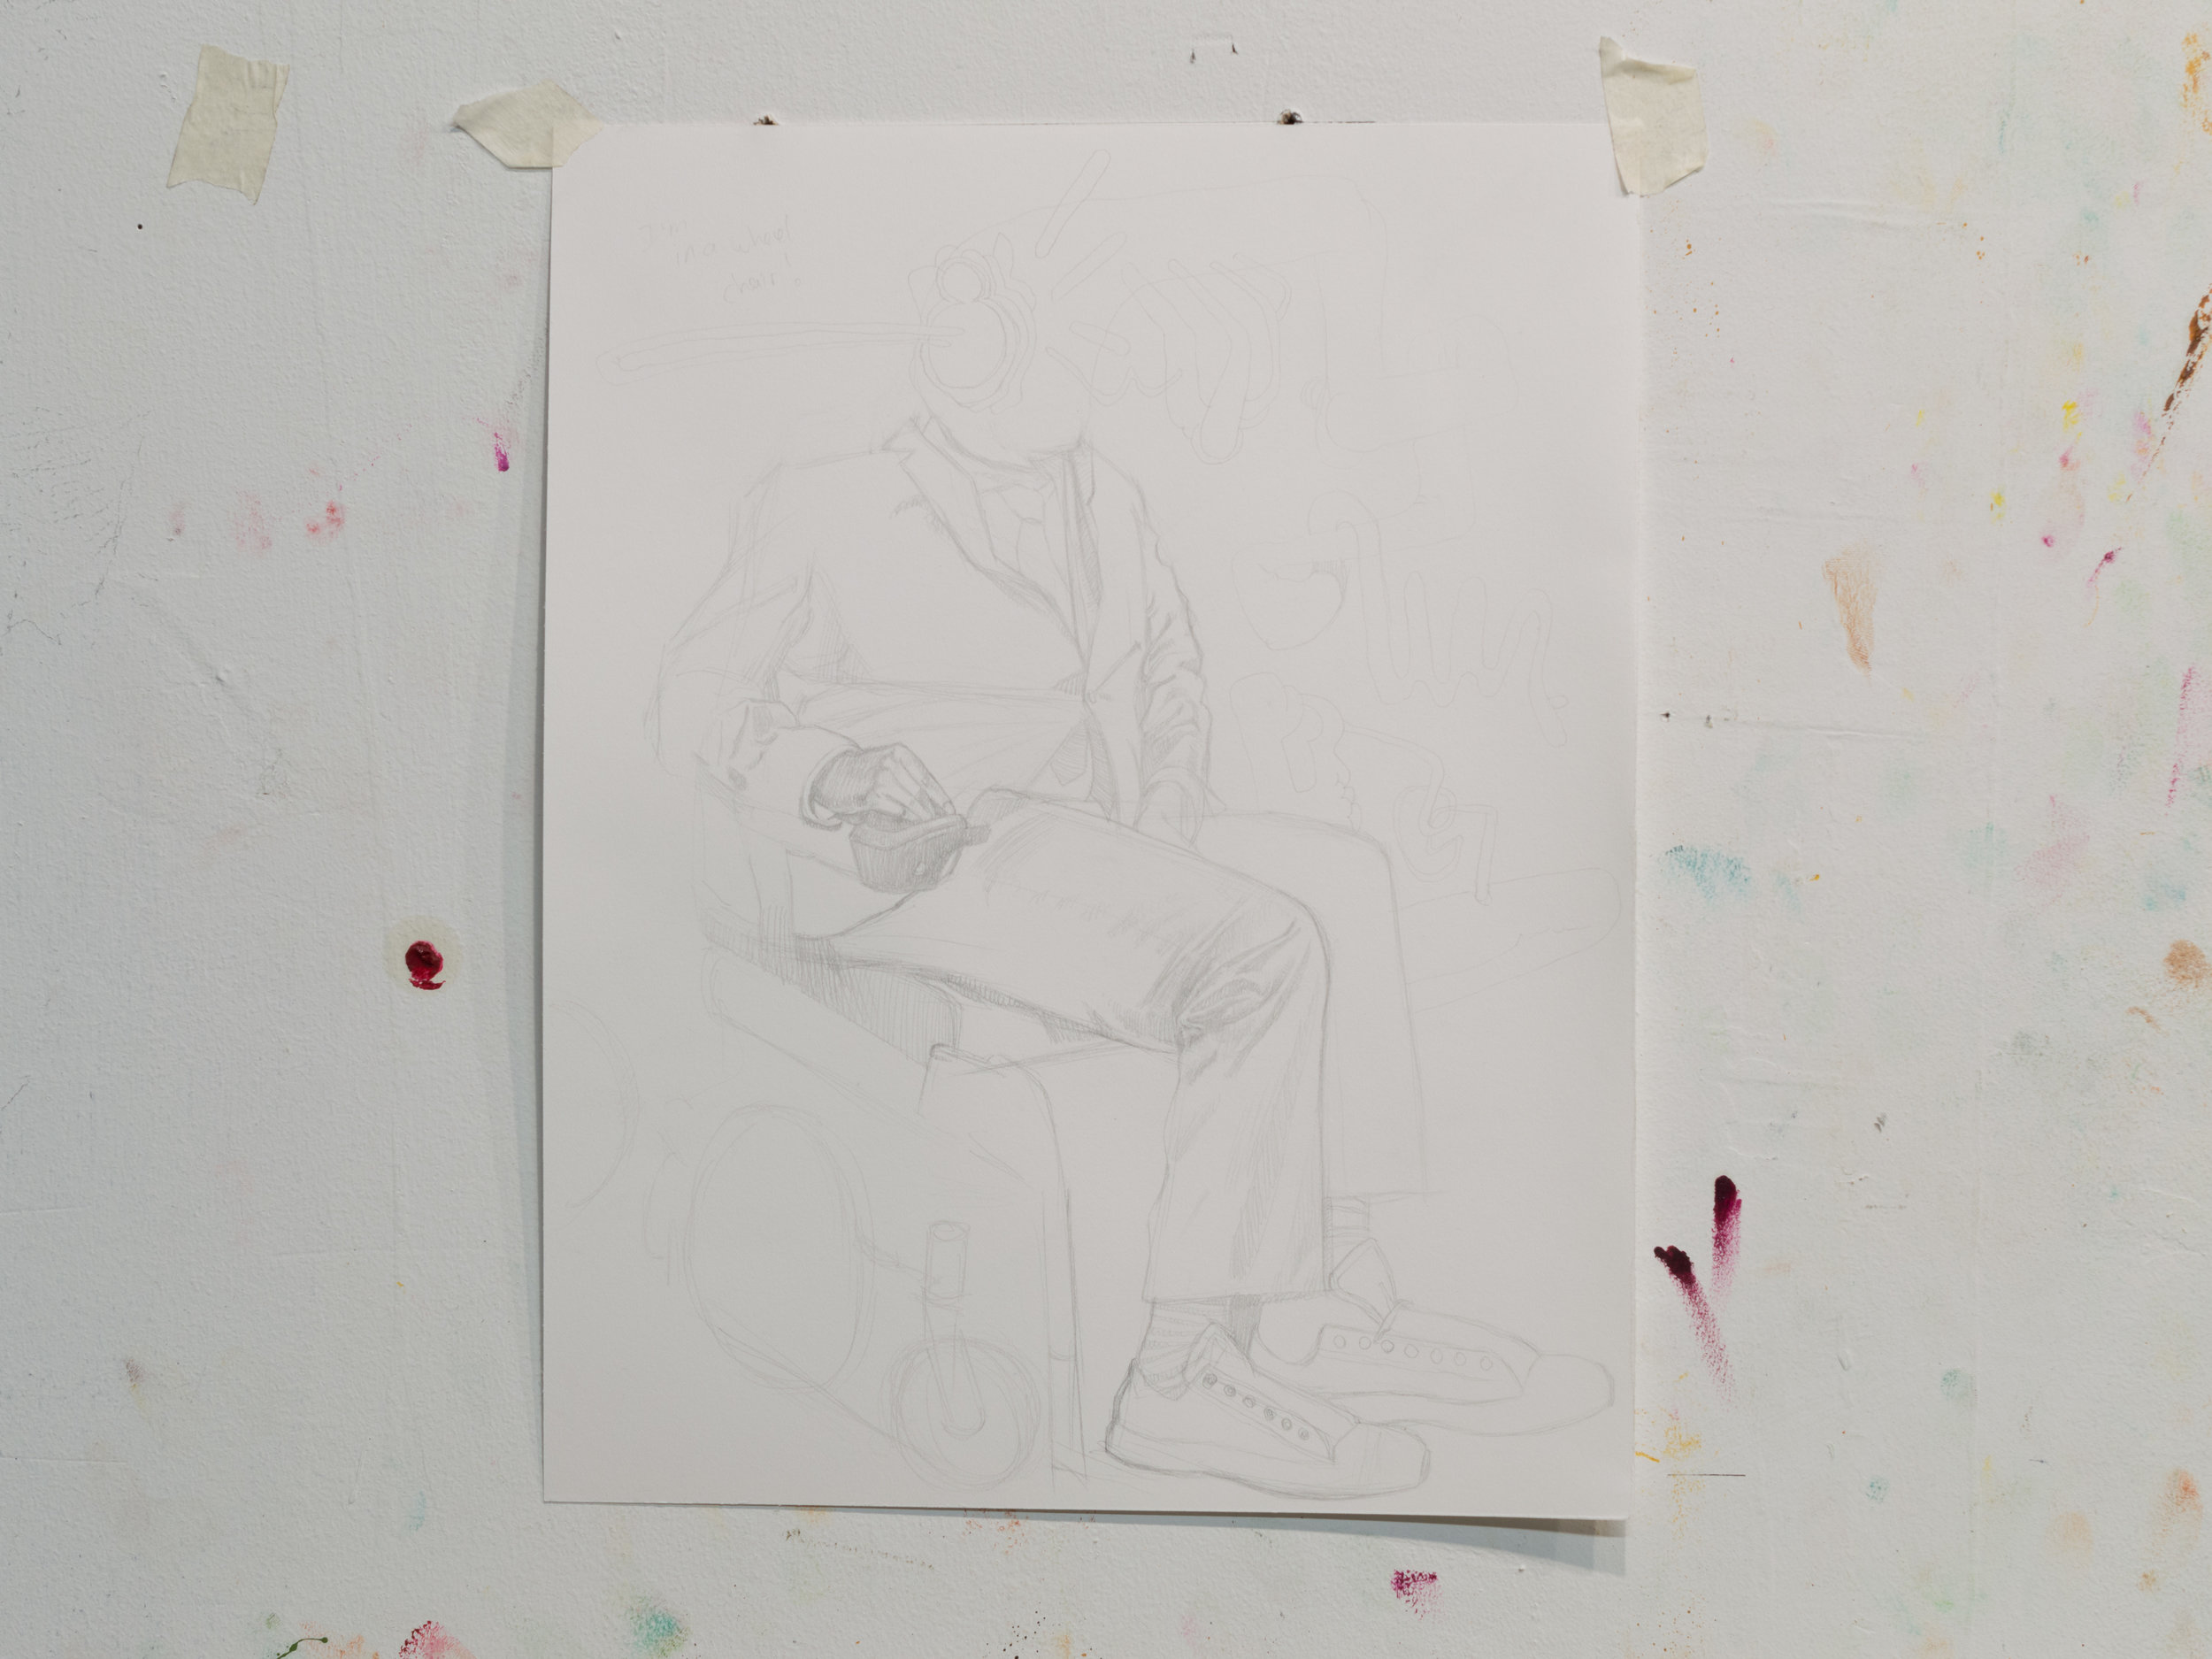 Seated Man, pencil on paper 2017